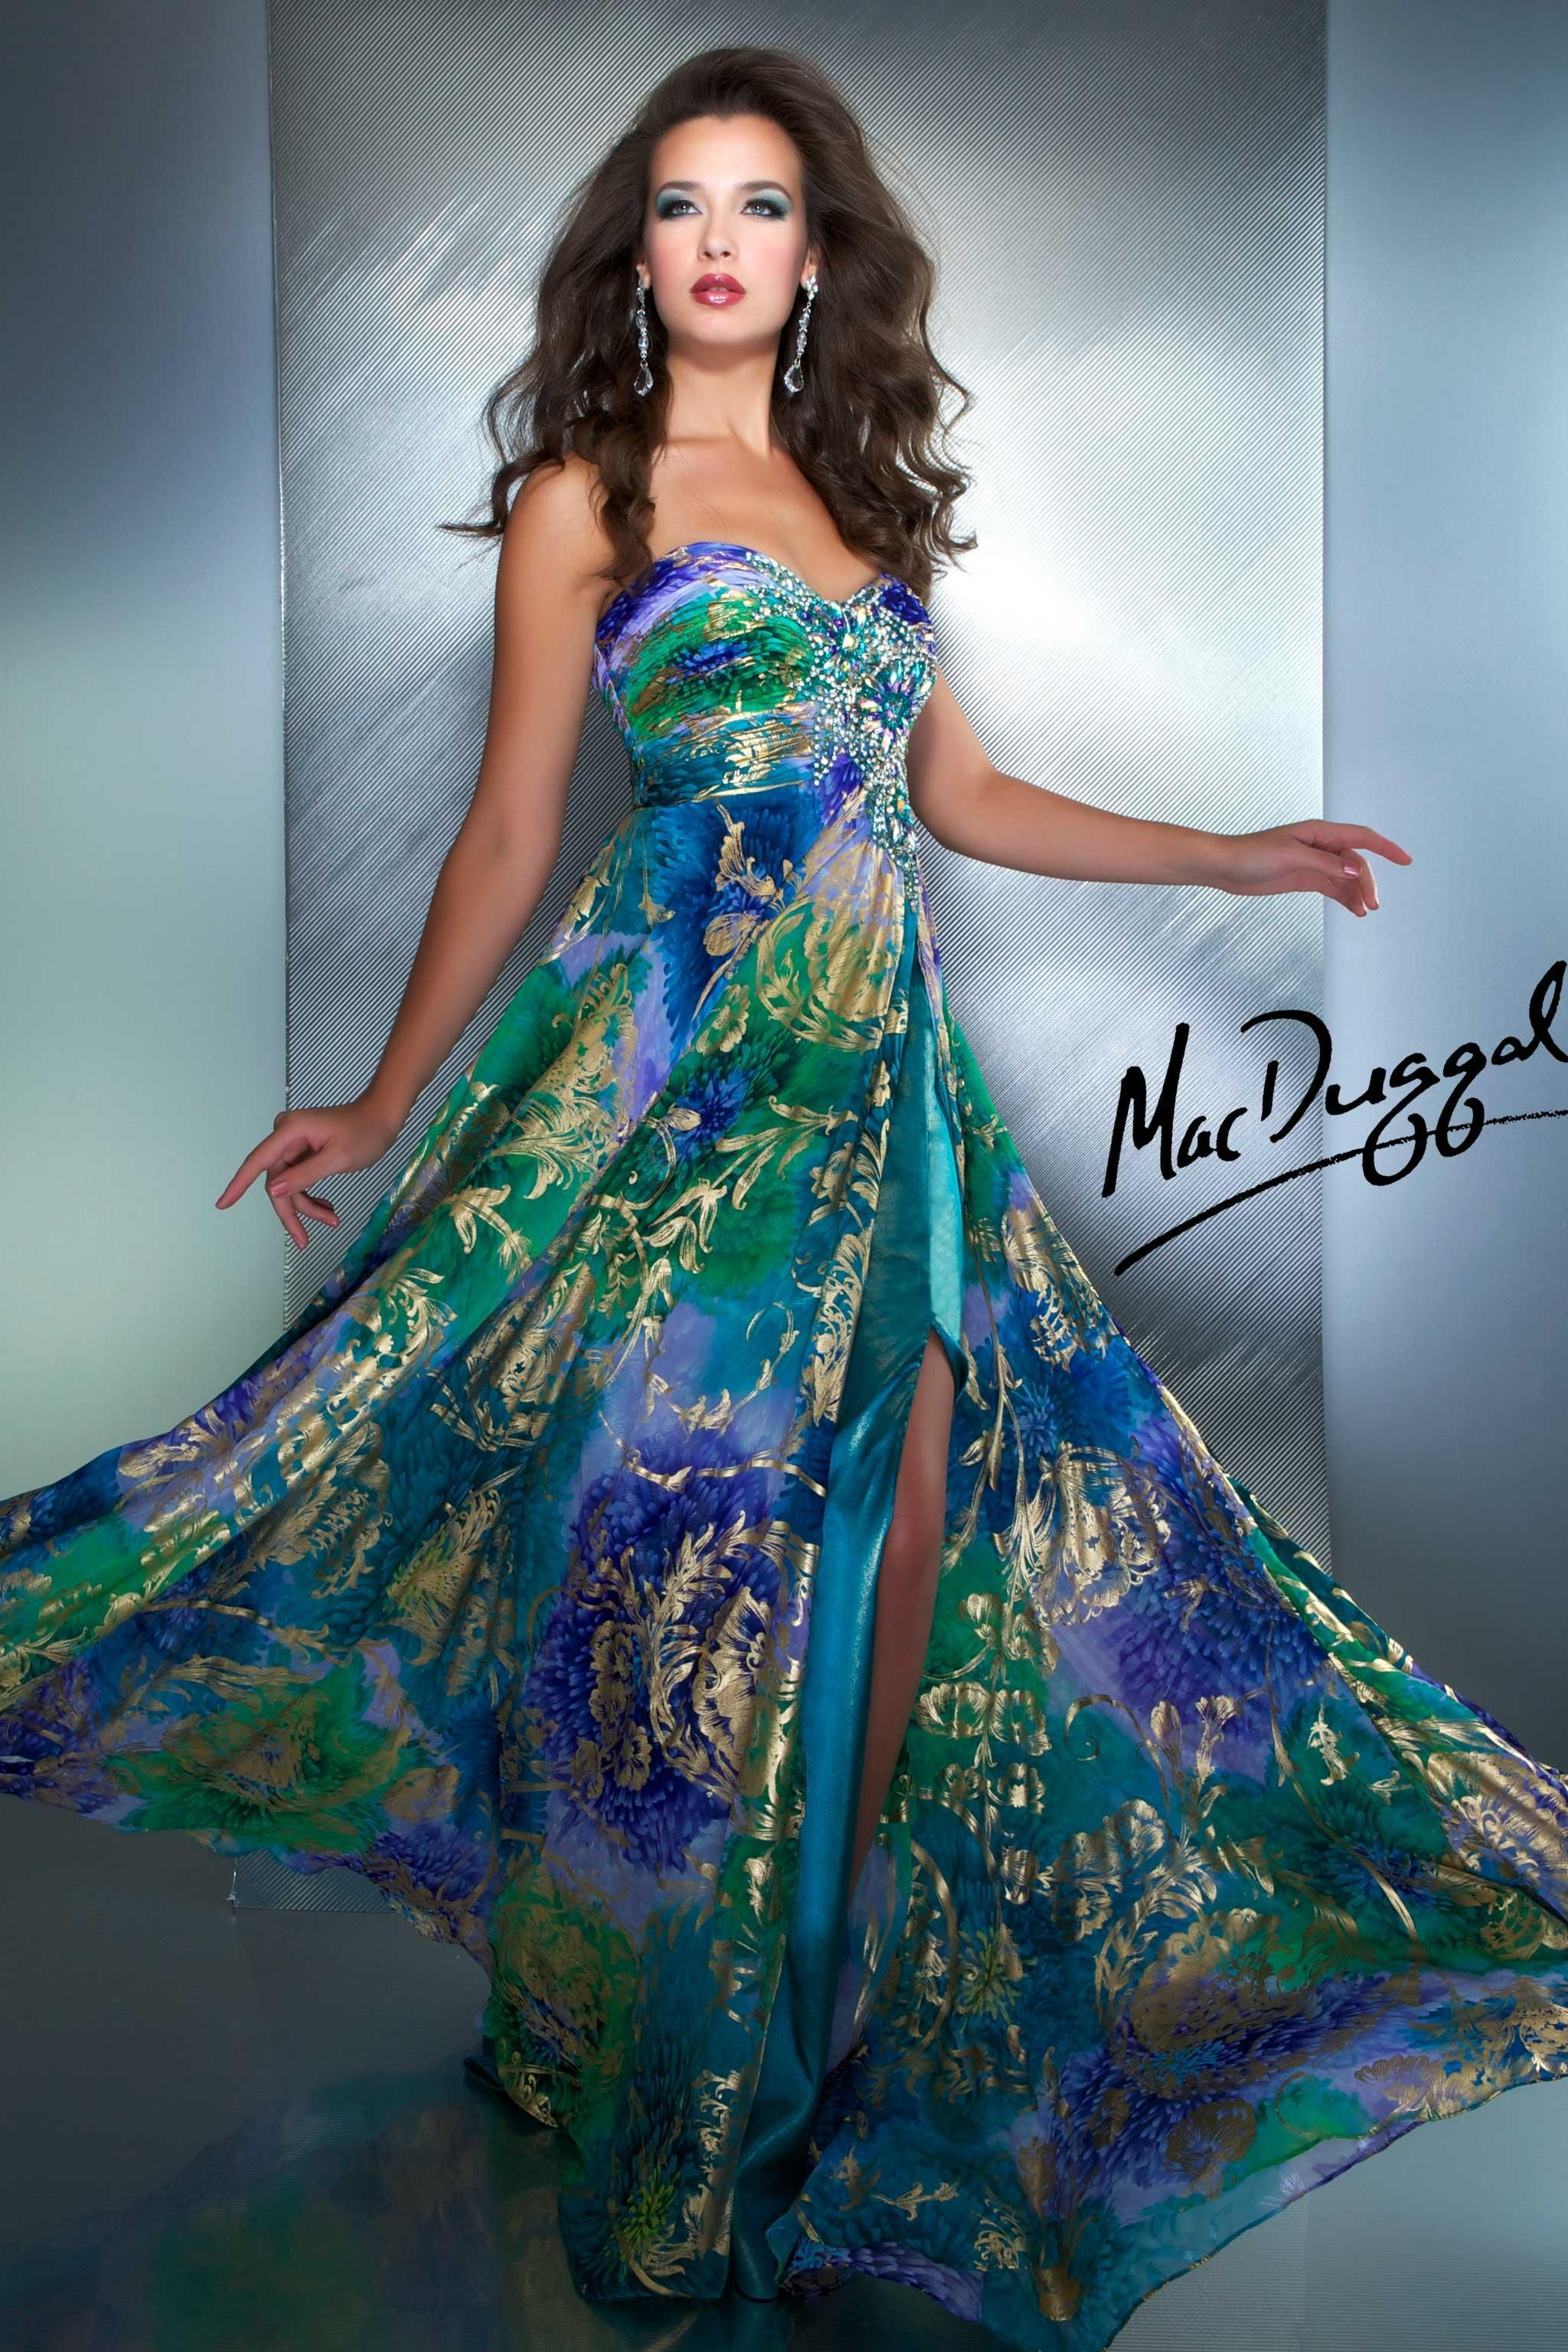 Peacock Floral Print Prom Dress - 50017M | Mac Duggal | Prom Stuff ...